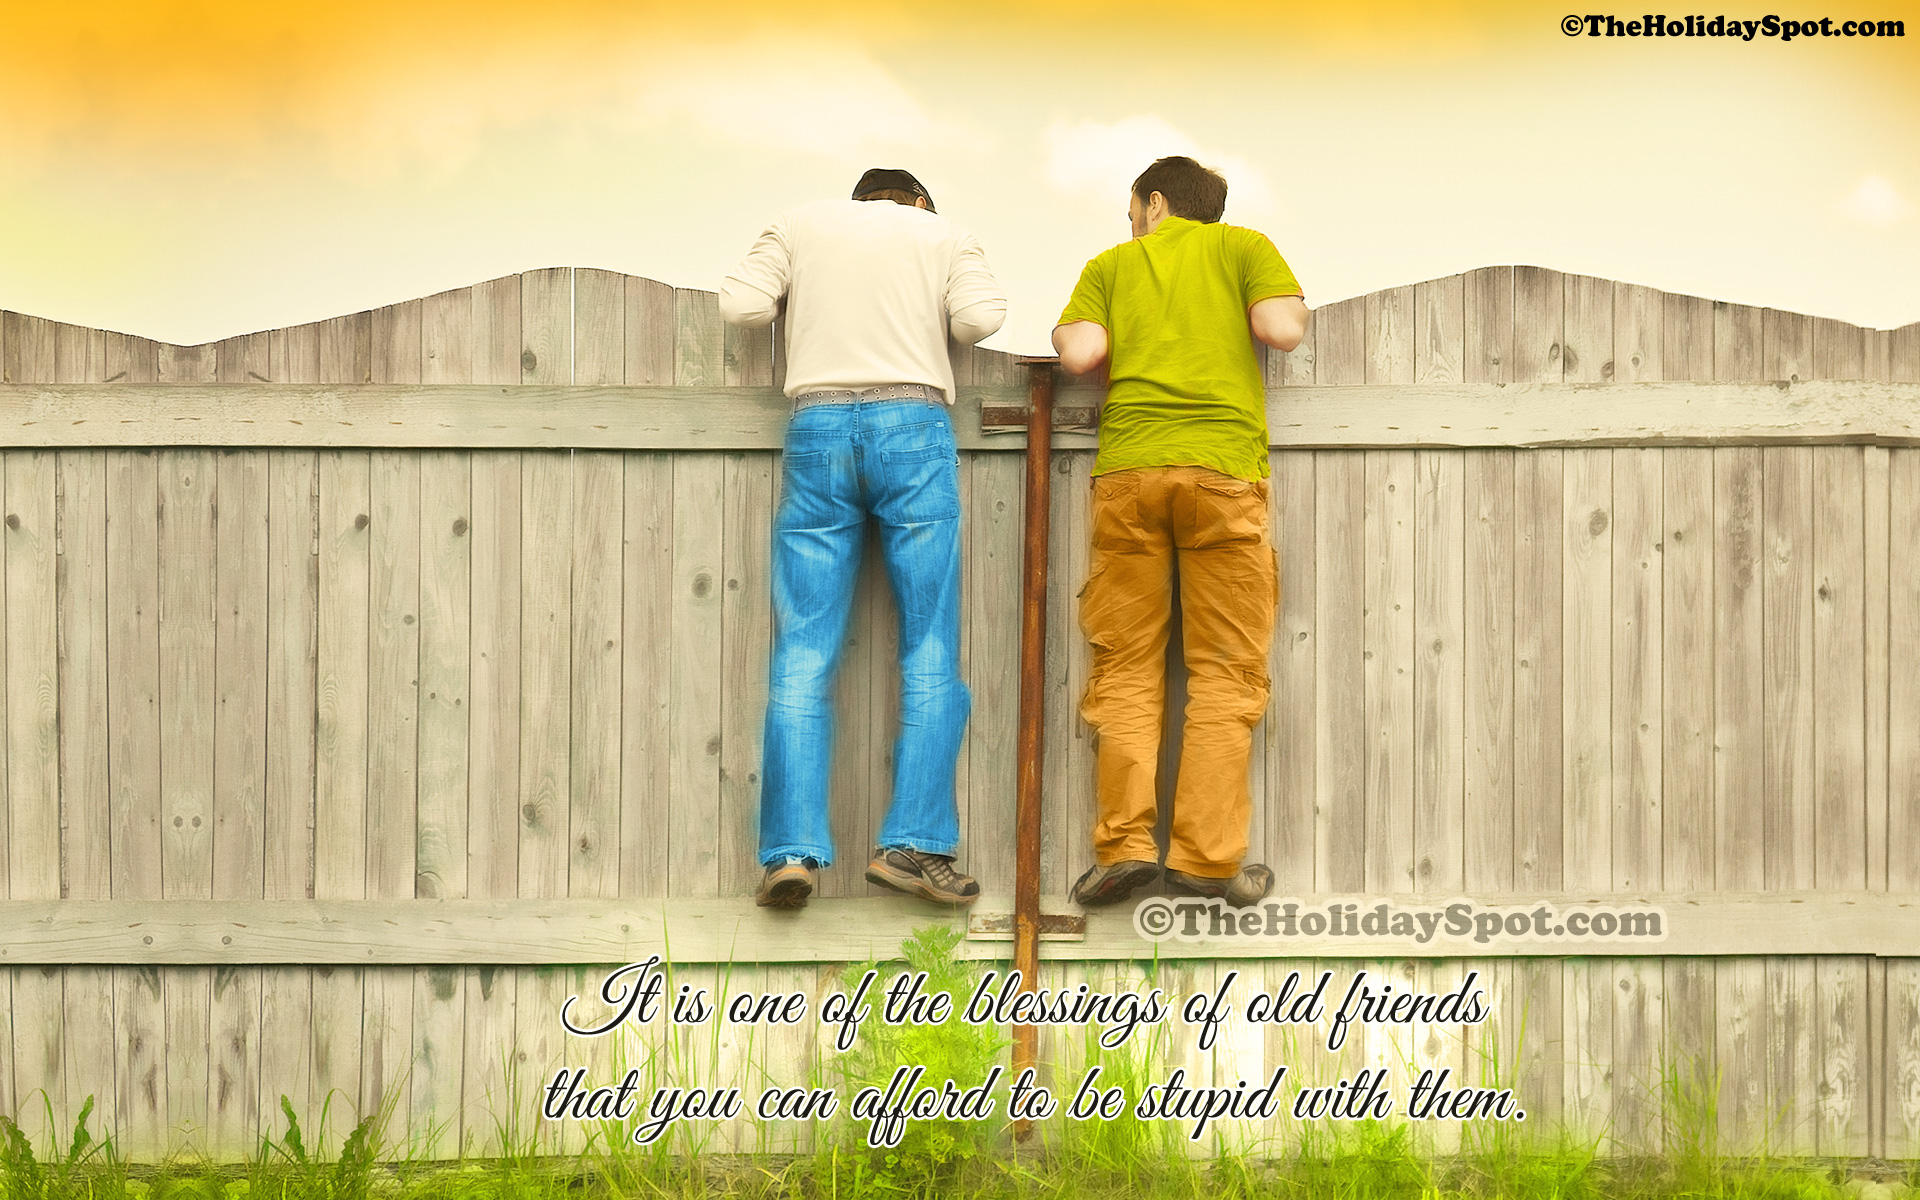 Friendship Quotes HD Wallpaper Free Wallpapers - New HD Wallpapers